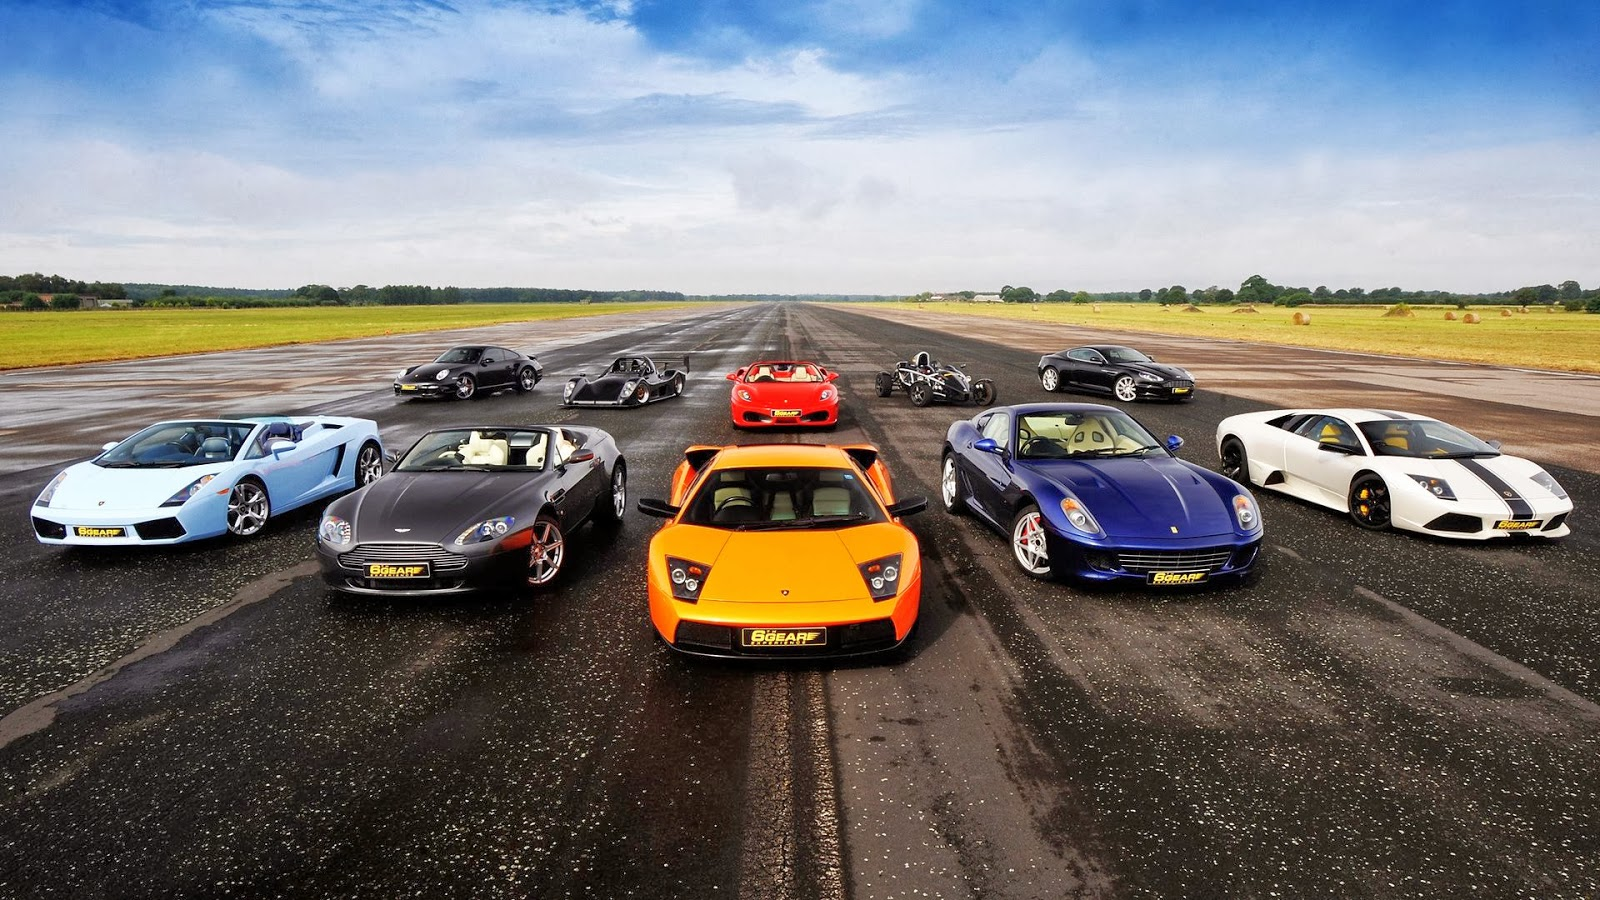 cars are awesome Ferrari is one of the world's most recognized brands not just car brands —  brands, period which is amazing when you consider that.